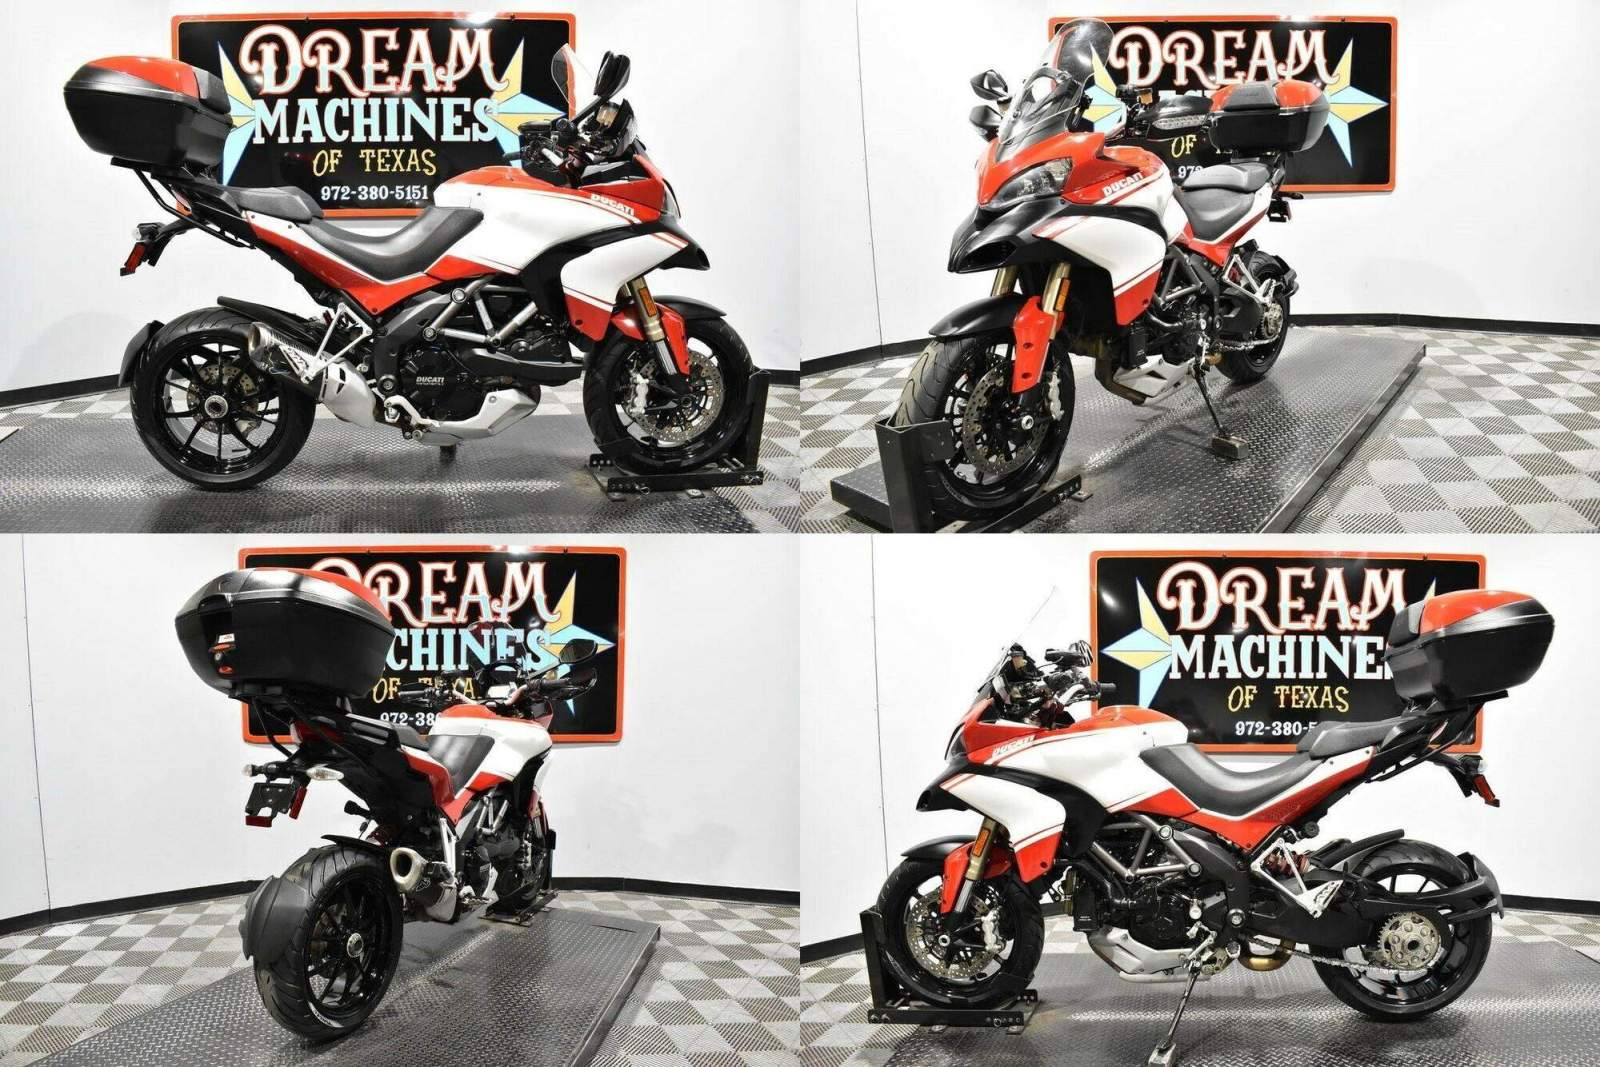 2012 Ducati Multistrada 1200 S Touring Red used for sale